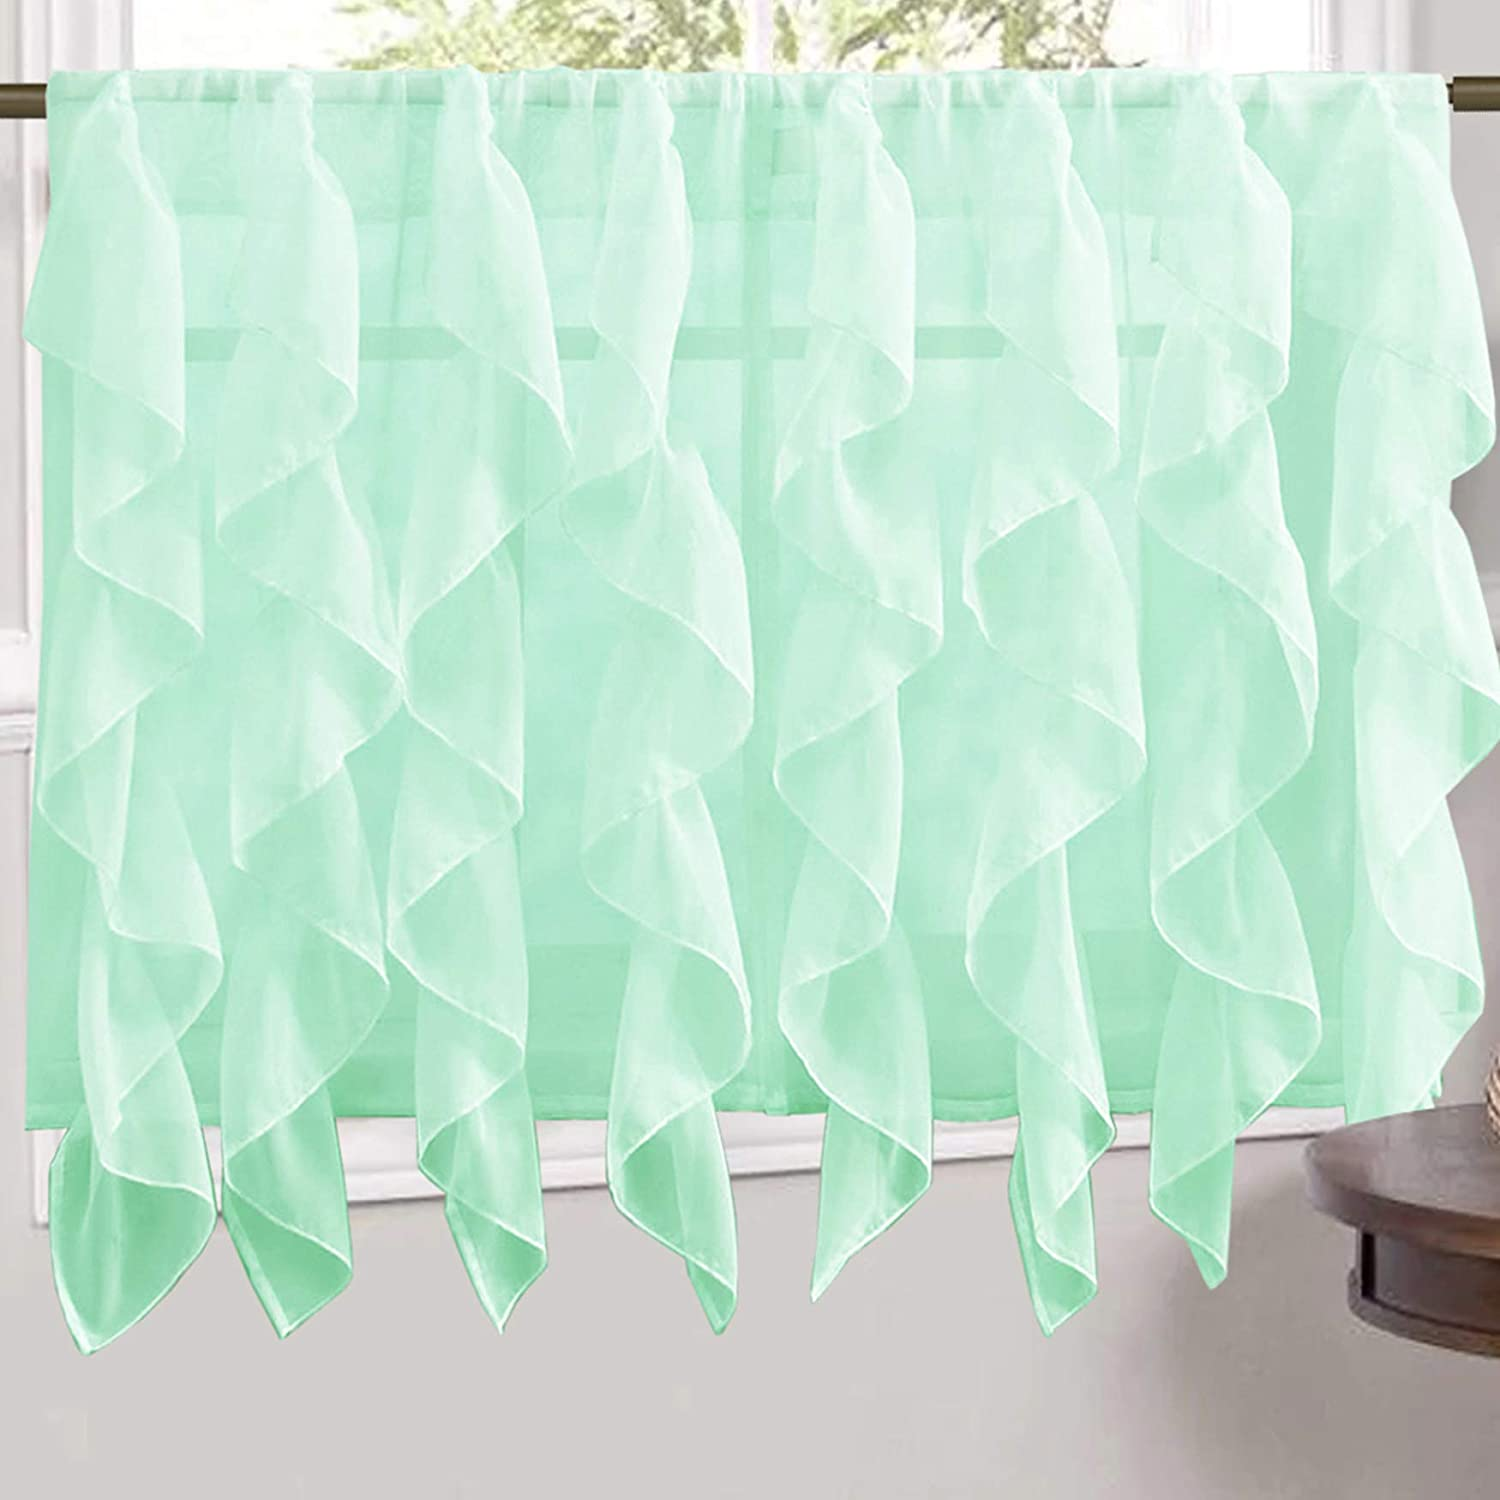 "Sweet Home Collection Veritcal Kitchen Curtain Sheer Cascading Ruffle Waterfall Window Treatment - Choice of Valance, 24"" or 36"" Teir, and Kit Tier Pair Only, Mint"